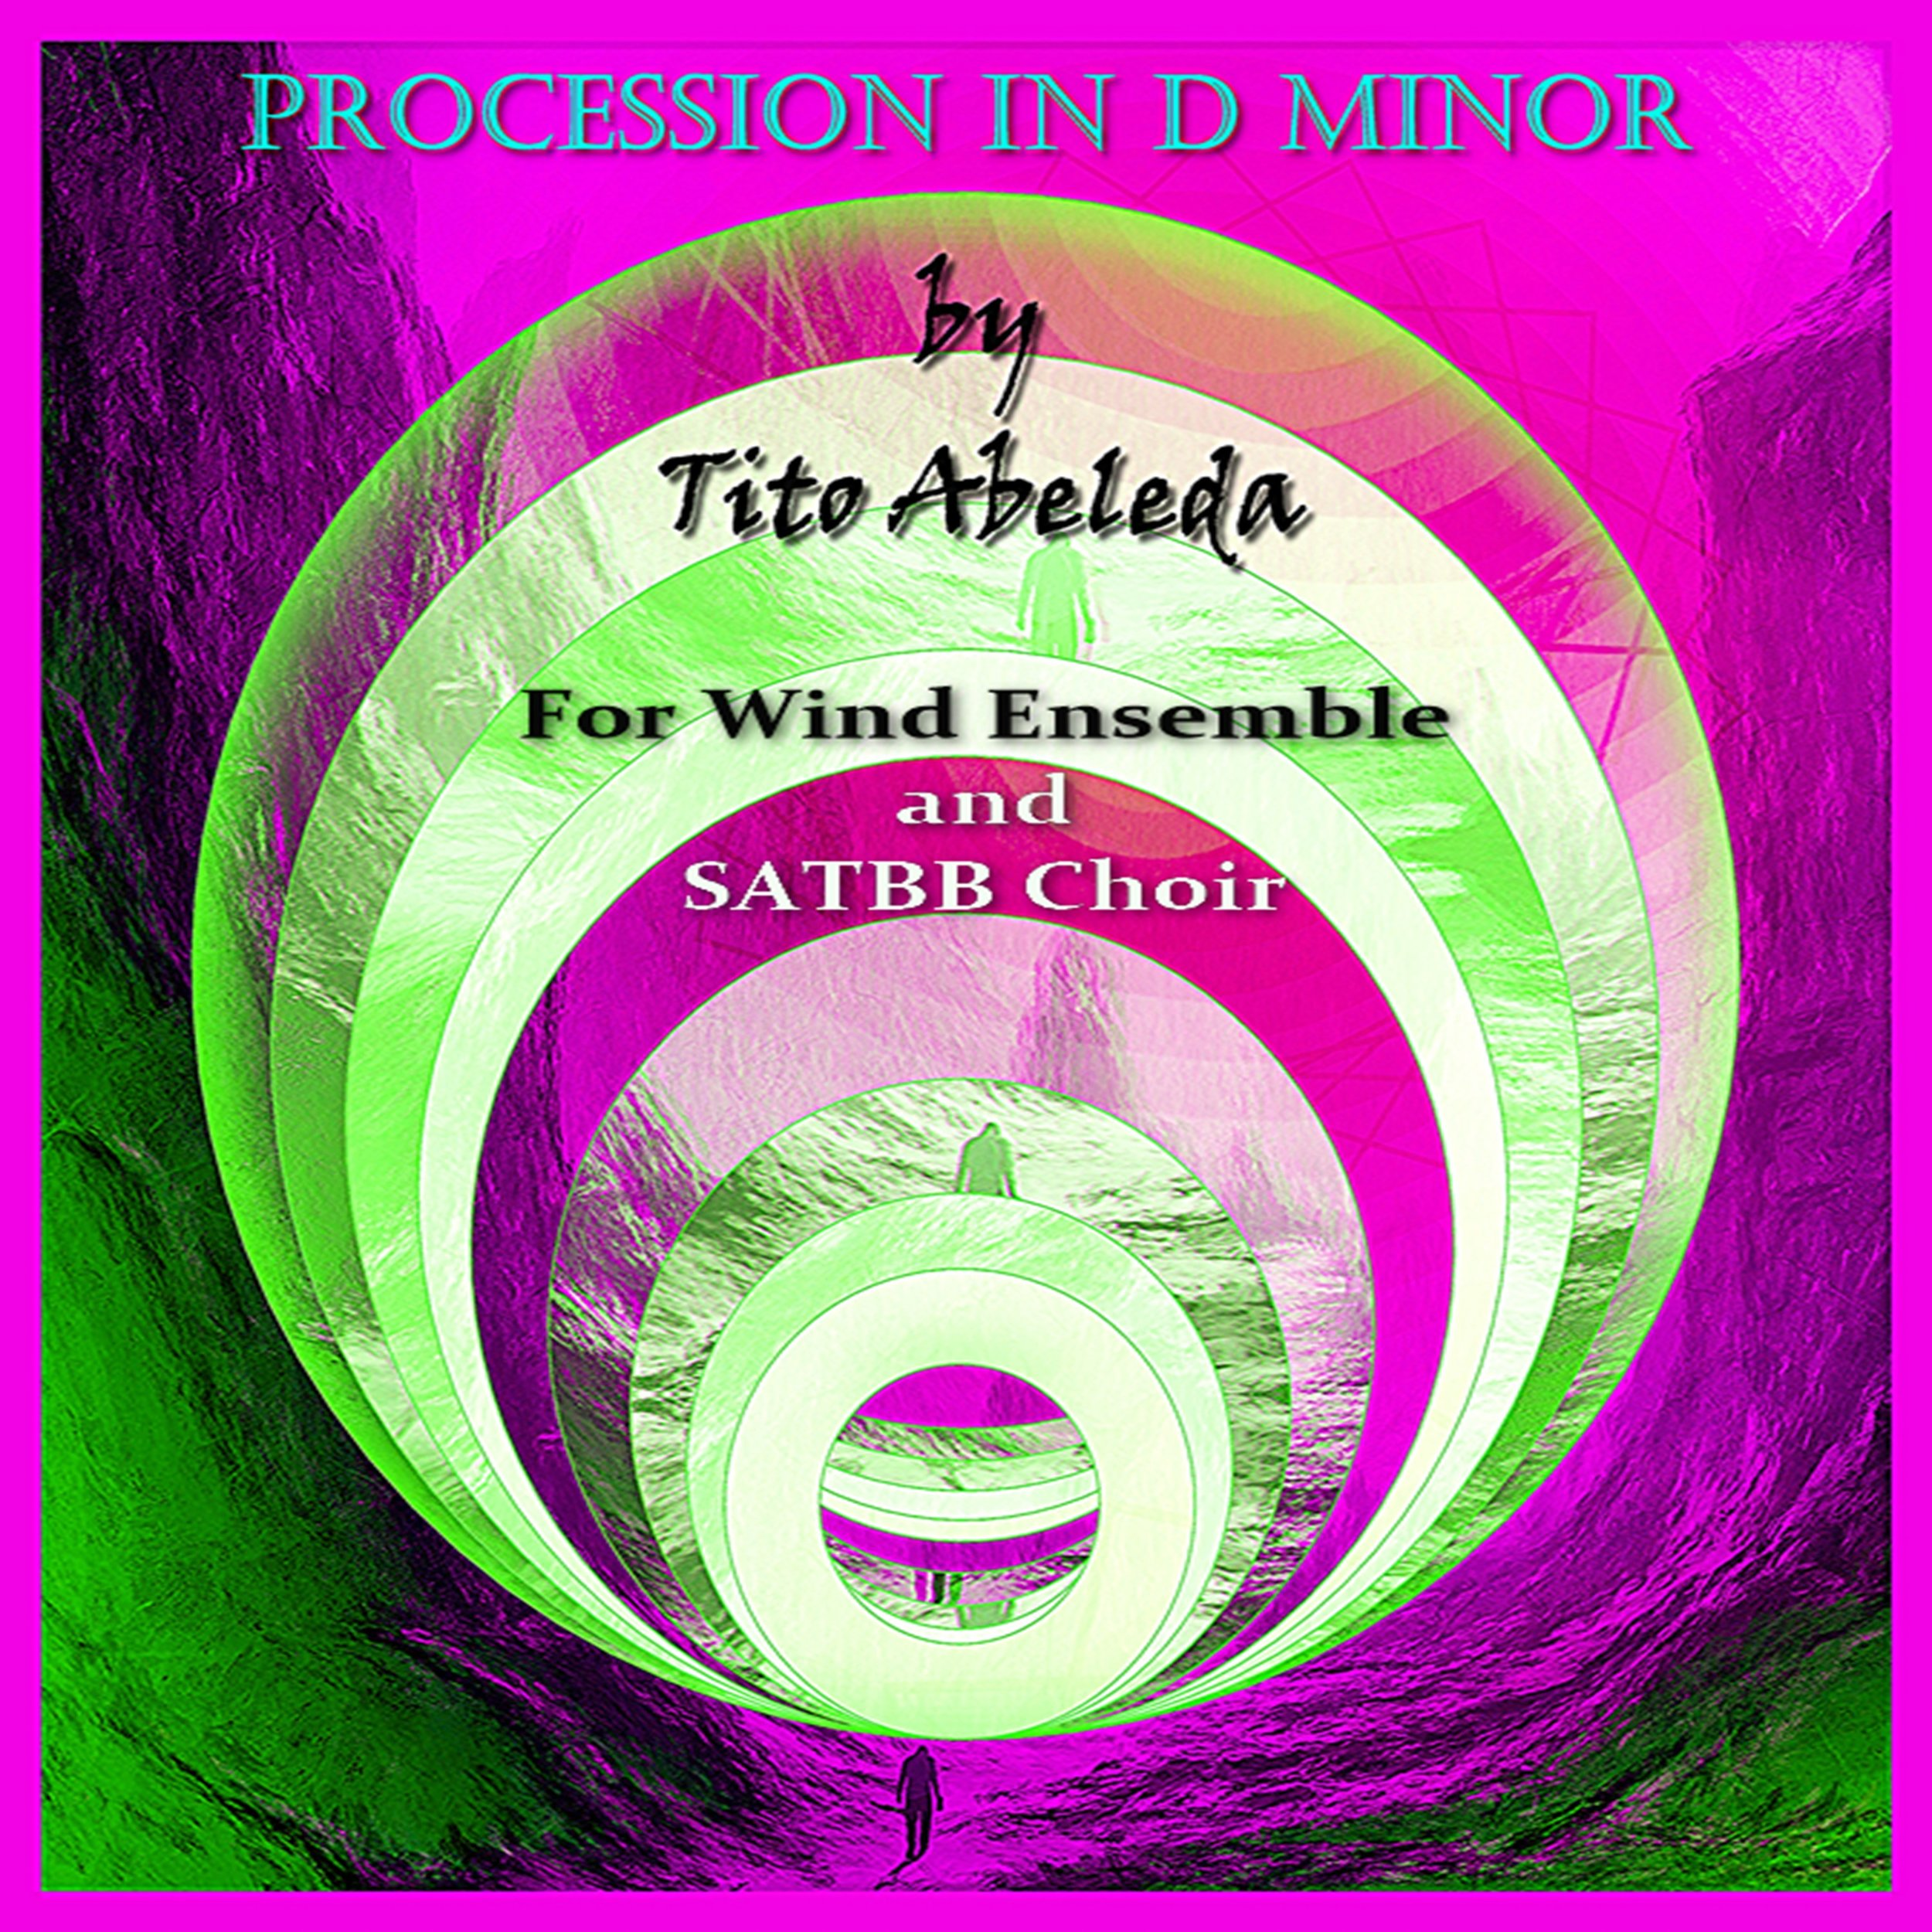 Procession in D Minor (for Wind Ensemble and SATBB Choir)